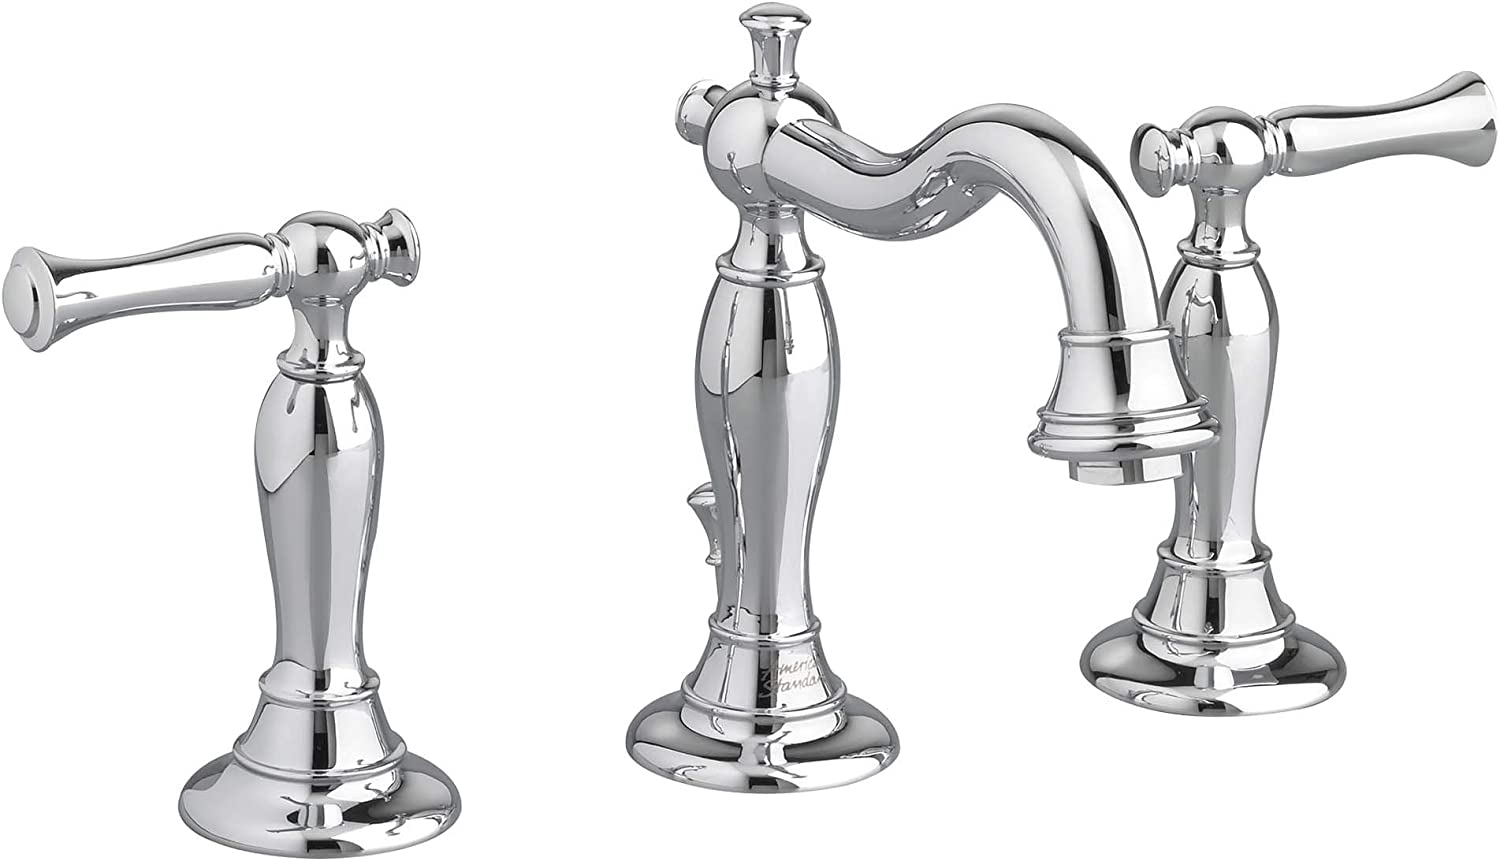 American Standard 7440.851.002 Quentin Widespread Lavatory Faucet, Polished Chrome